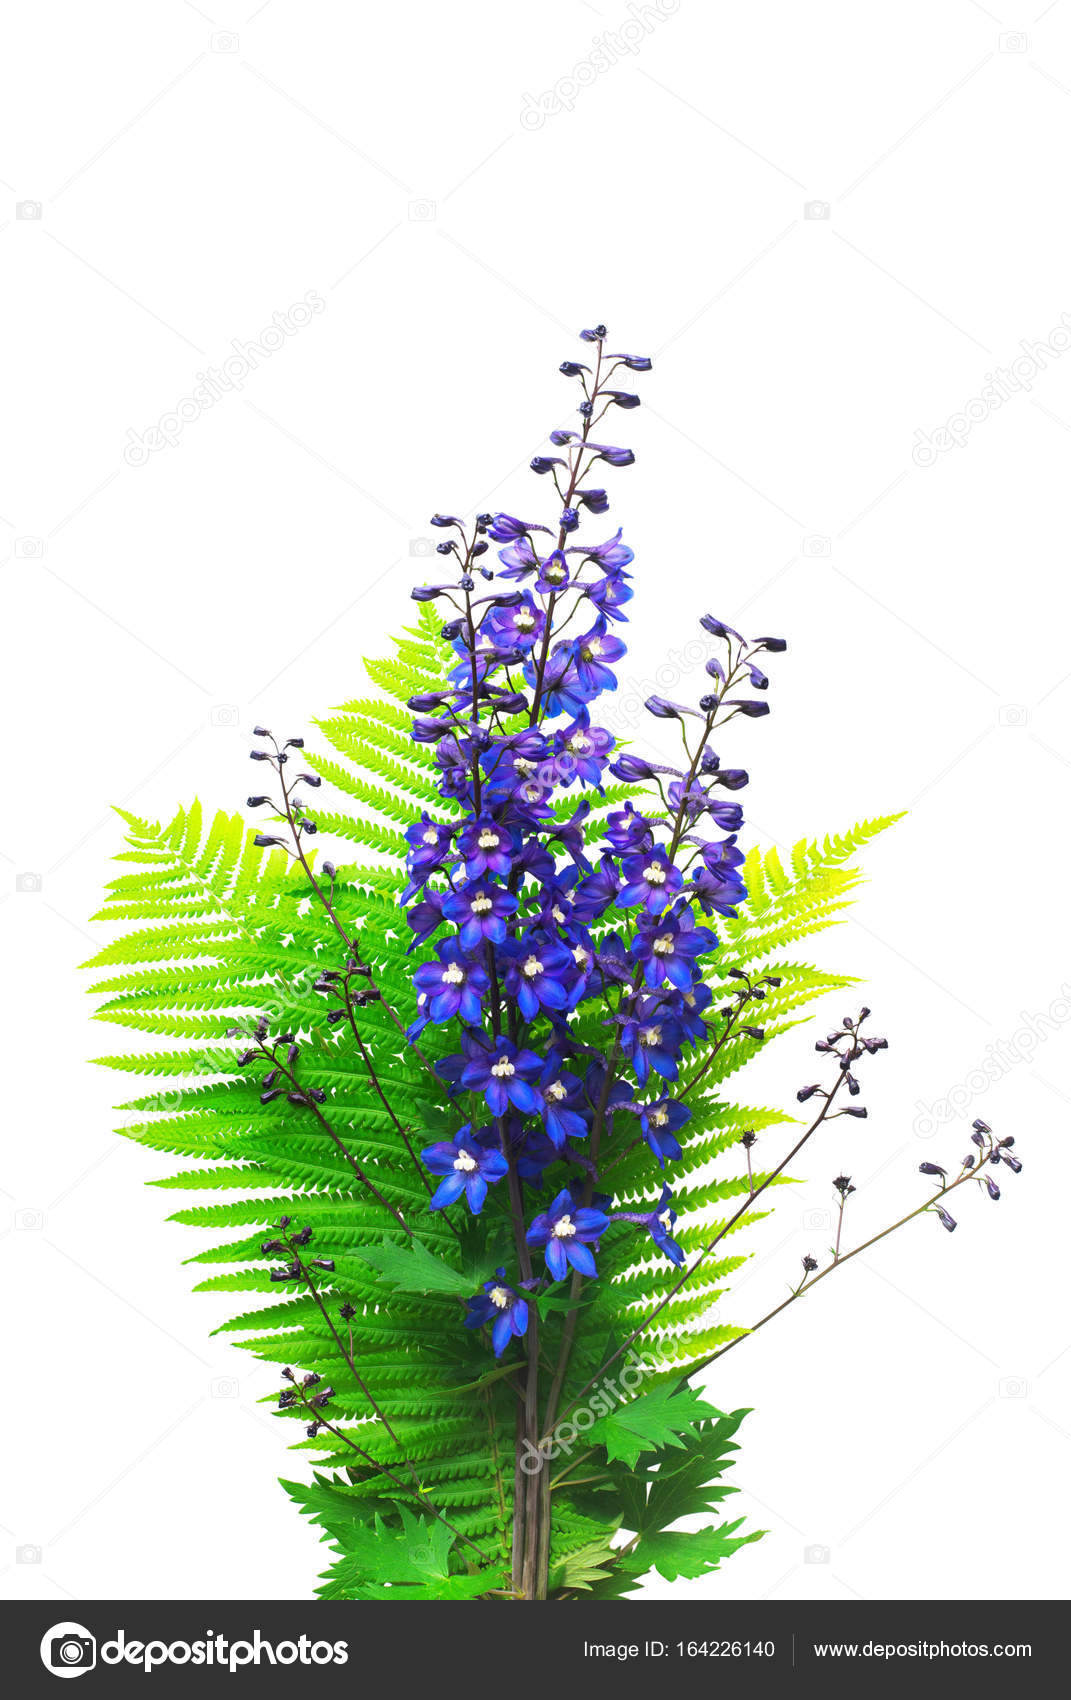 Delphinium Flowers And Fern Branch In Bouquet Isolated On White